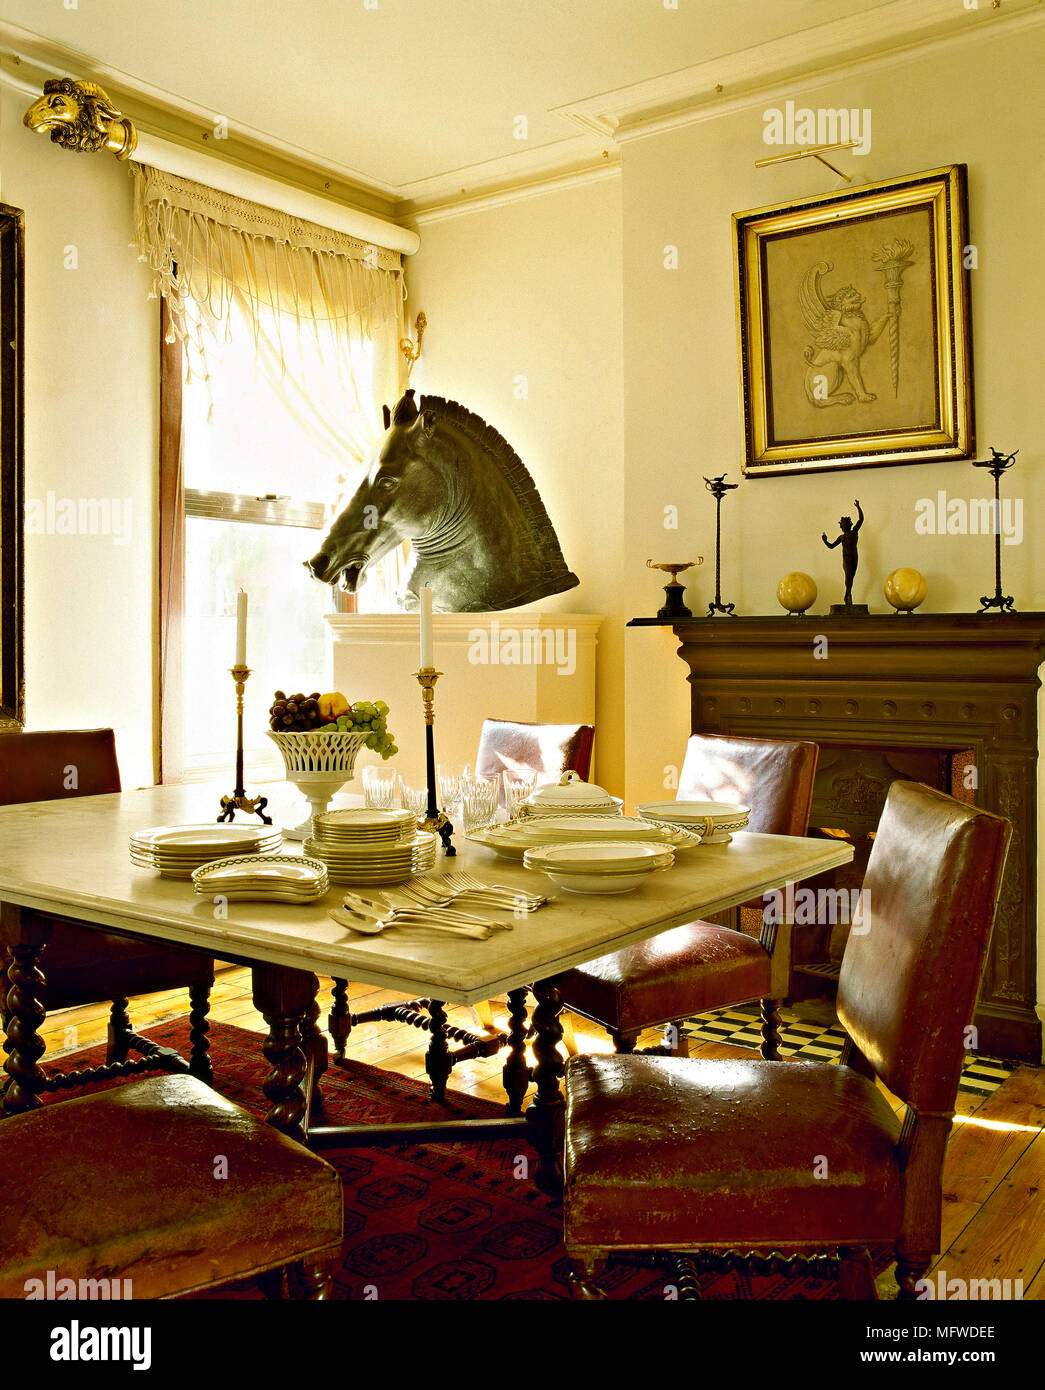 A traditional dining room with white walls, fireplace, tableware ...